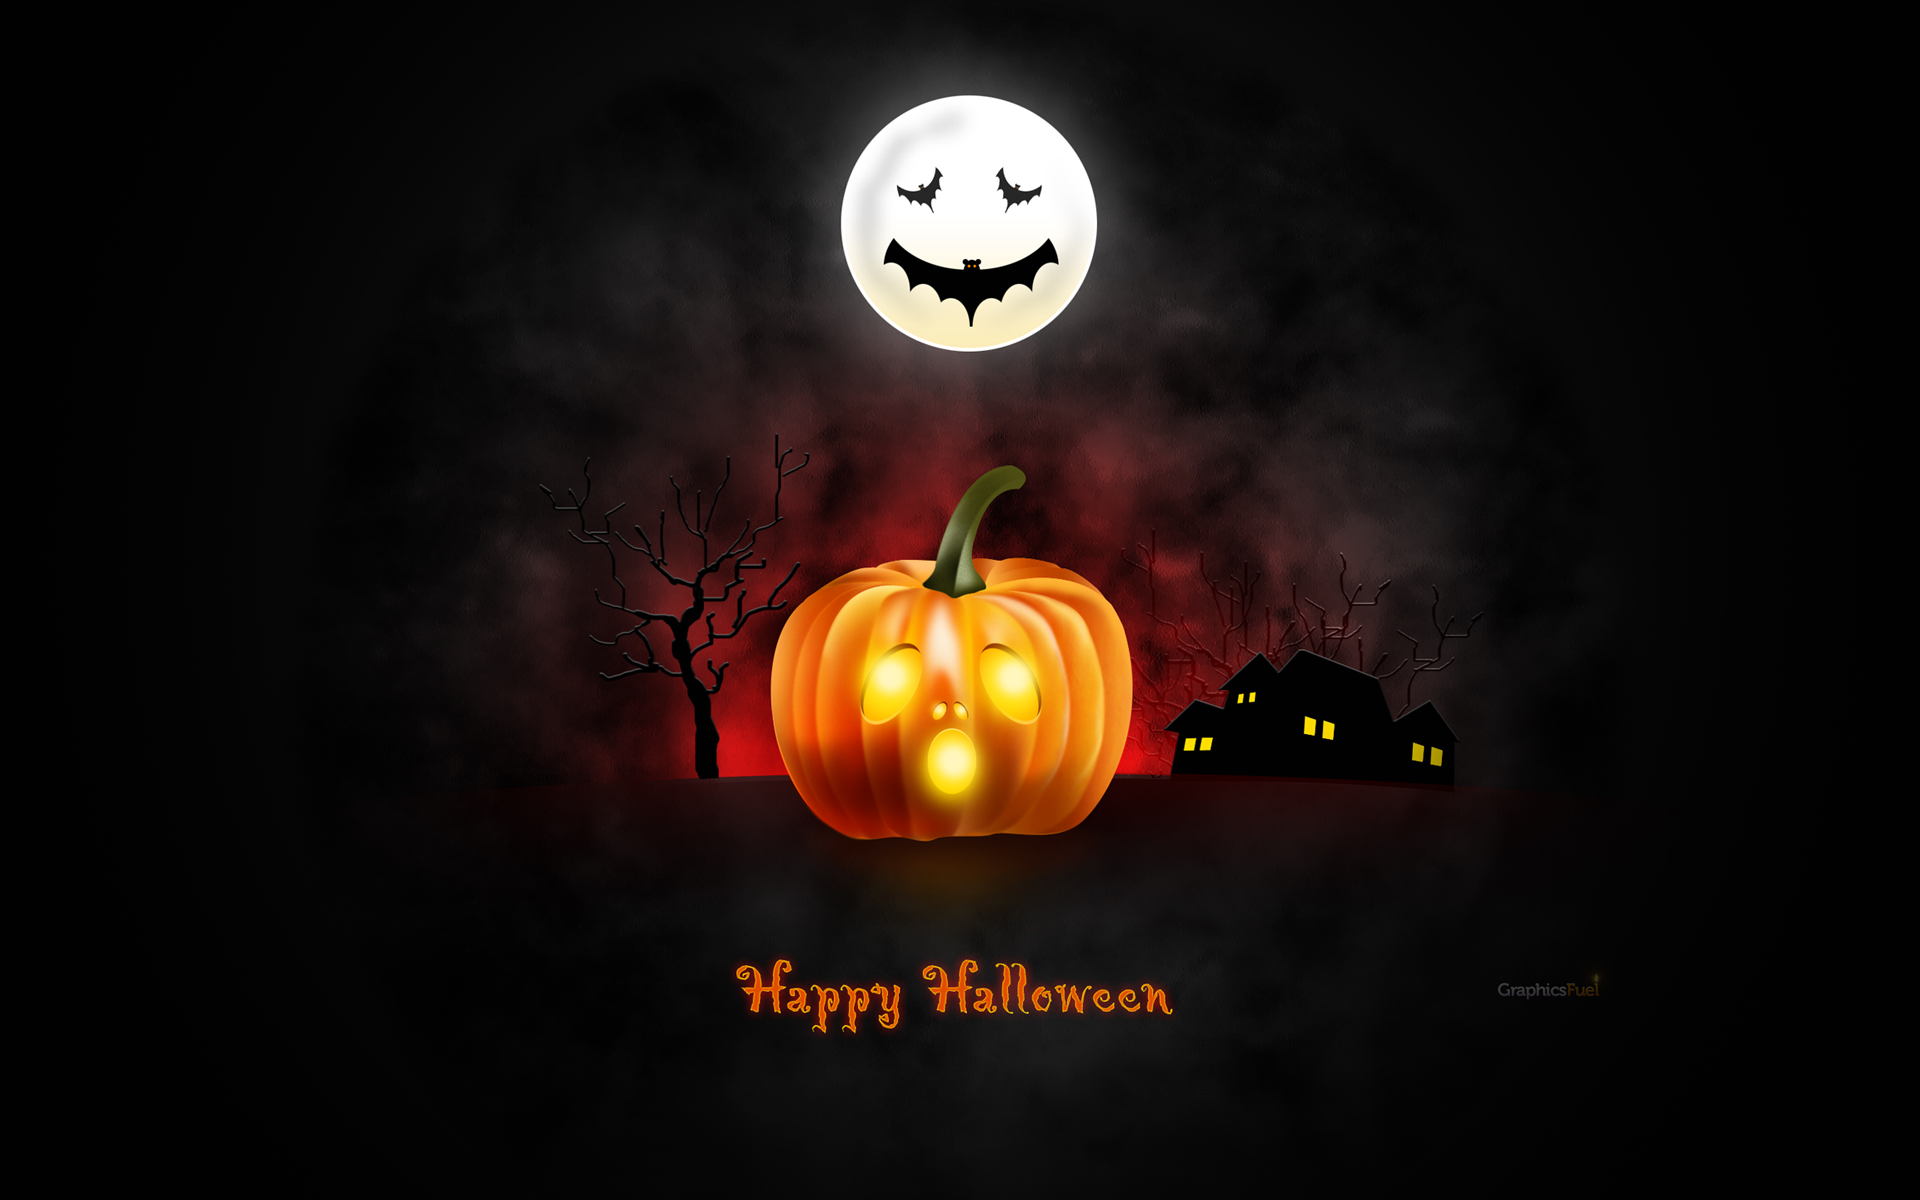 halloween wallpaper for desktop ipad iphone psd